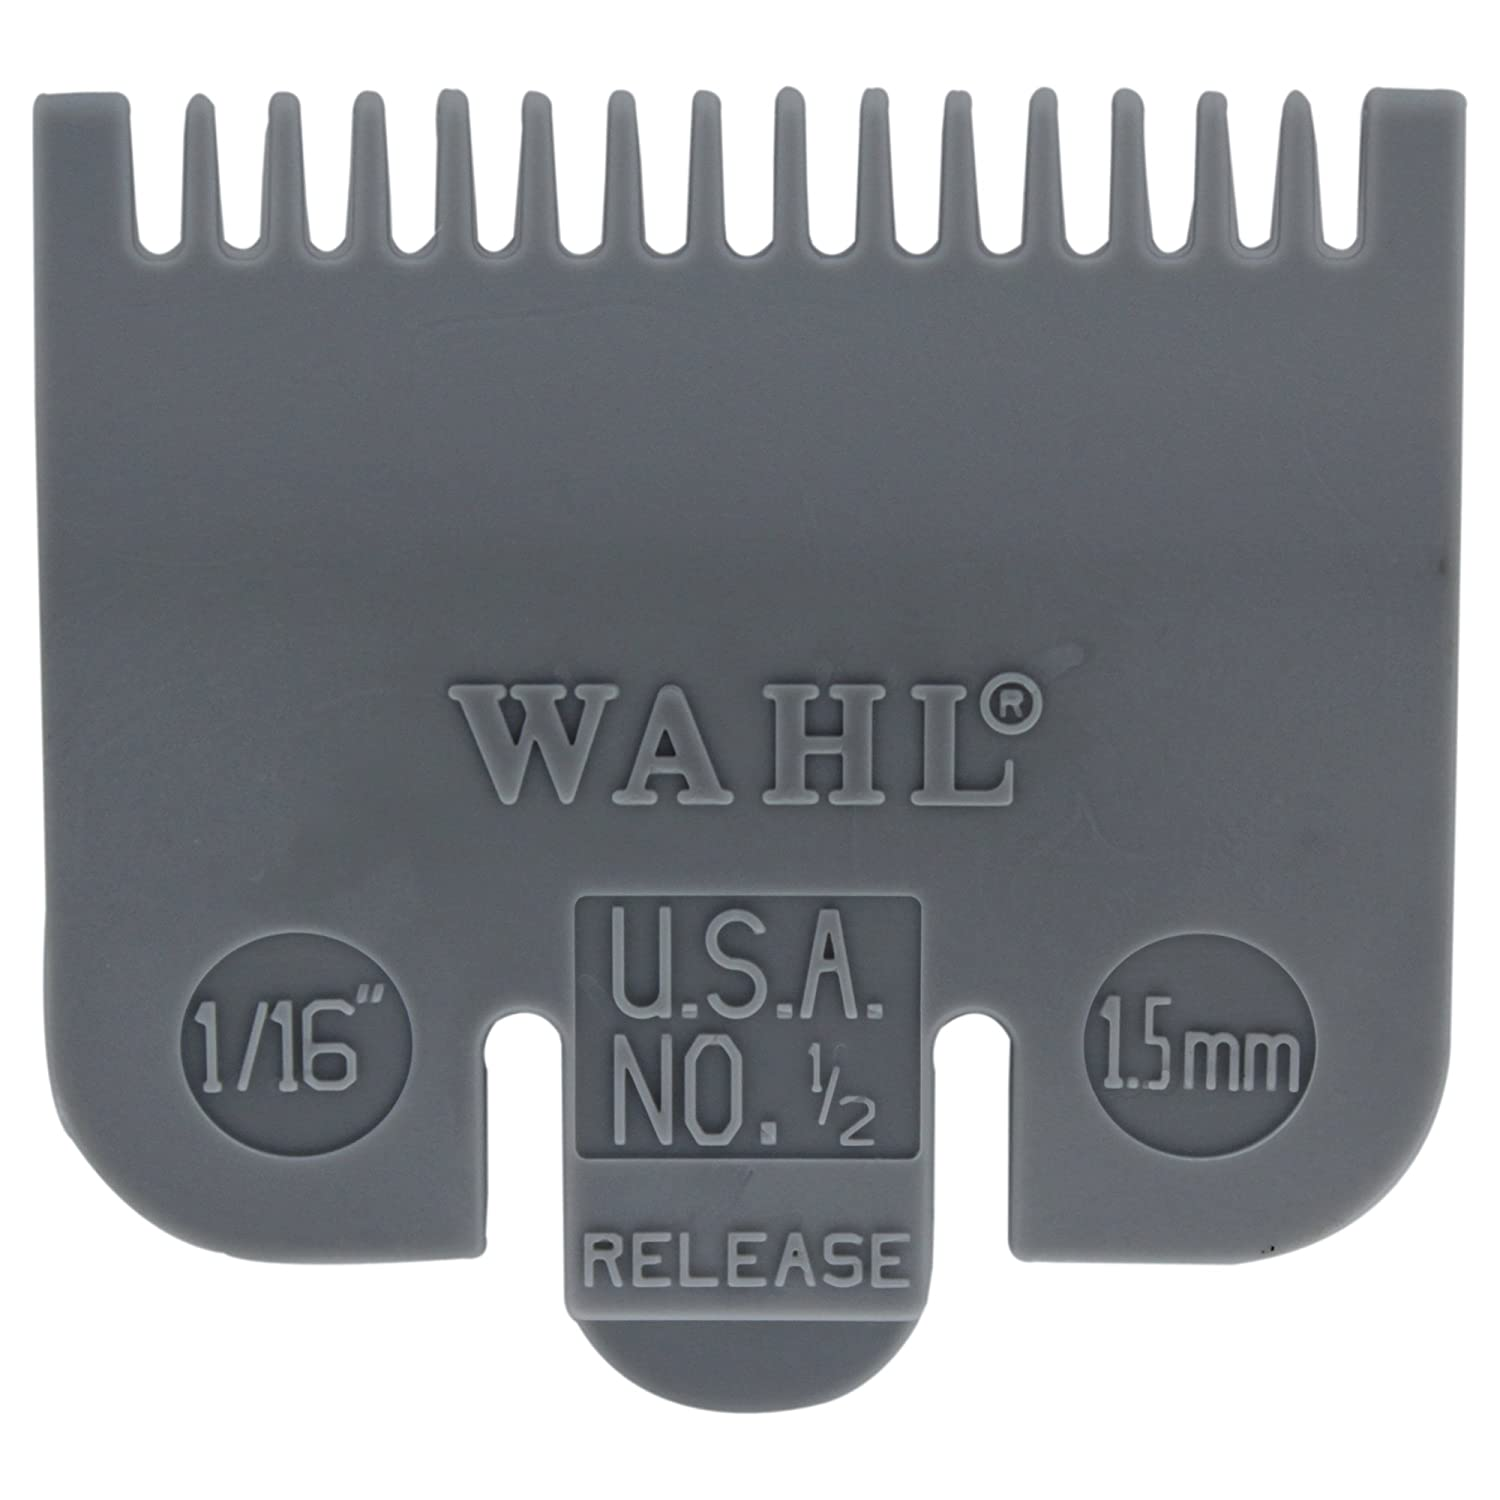 Wahl Professional Color Coded Comb Attachment - 2021 new #3137-101 # Grey Austin Mall